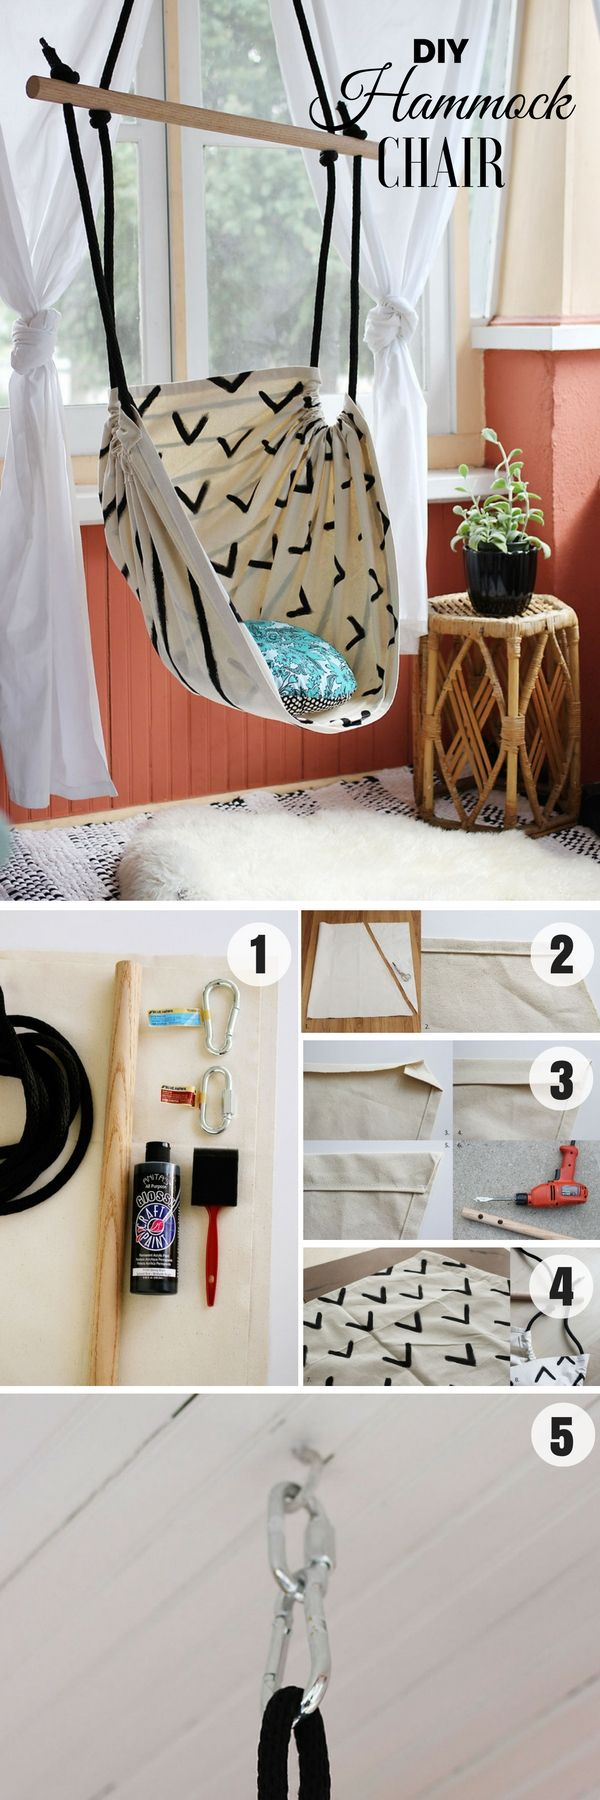 Best 25 Easy diy room decor ideas on Pinterest DIY Diy bedroom